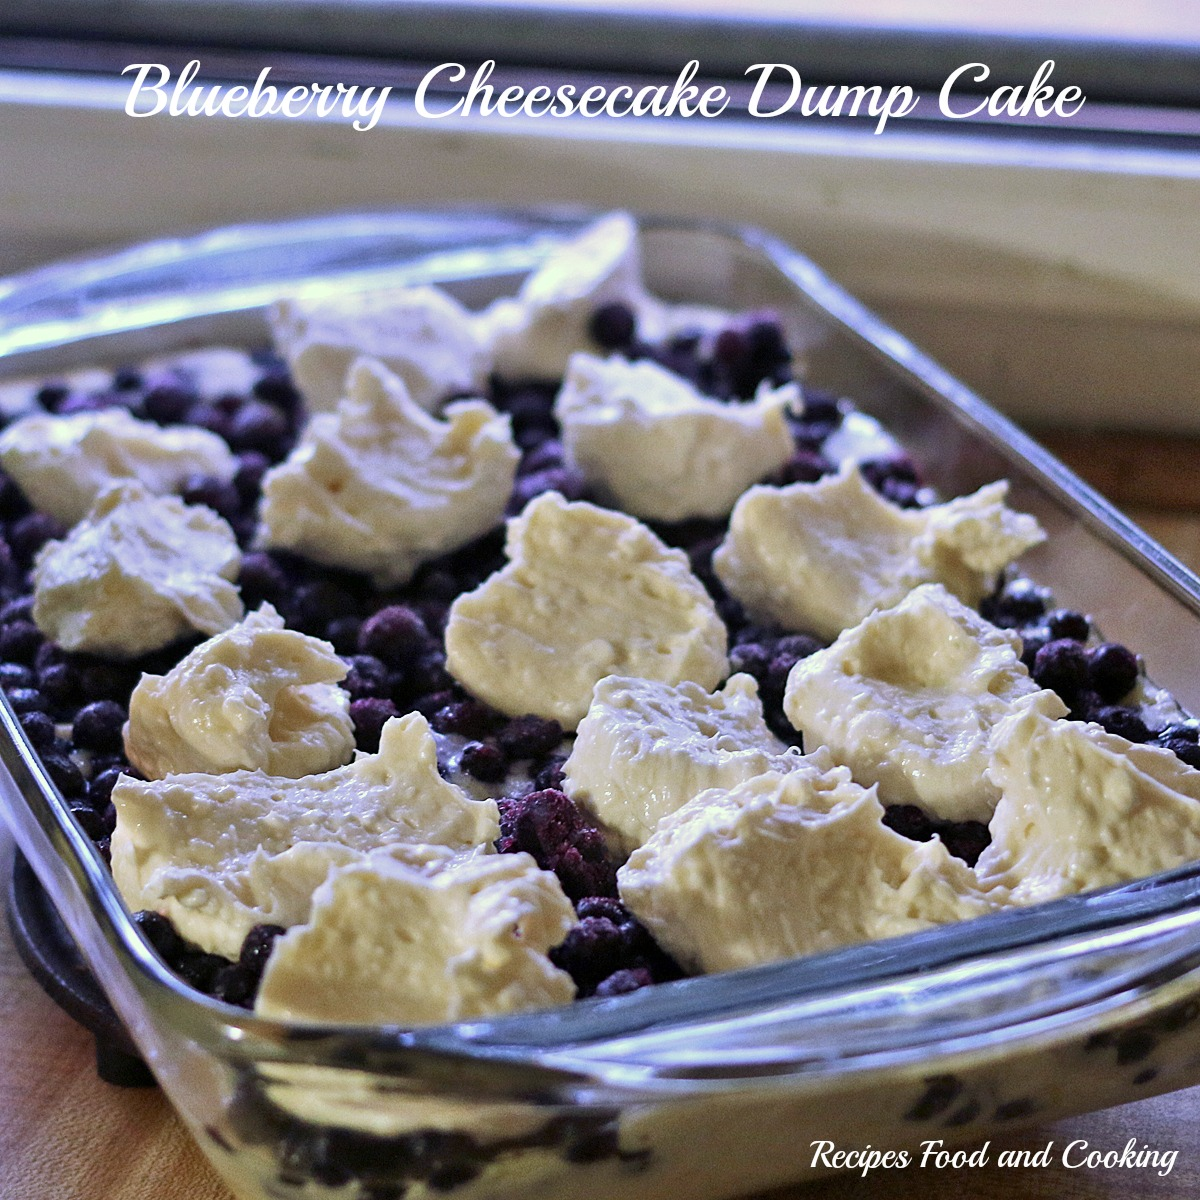 Blueberry Cheesecake Dump Cake